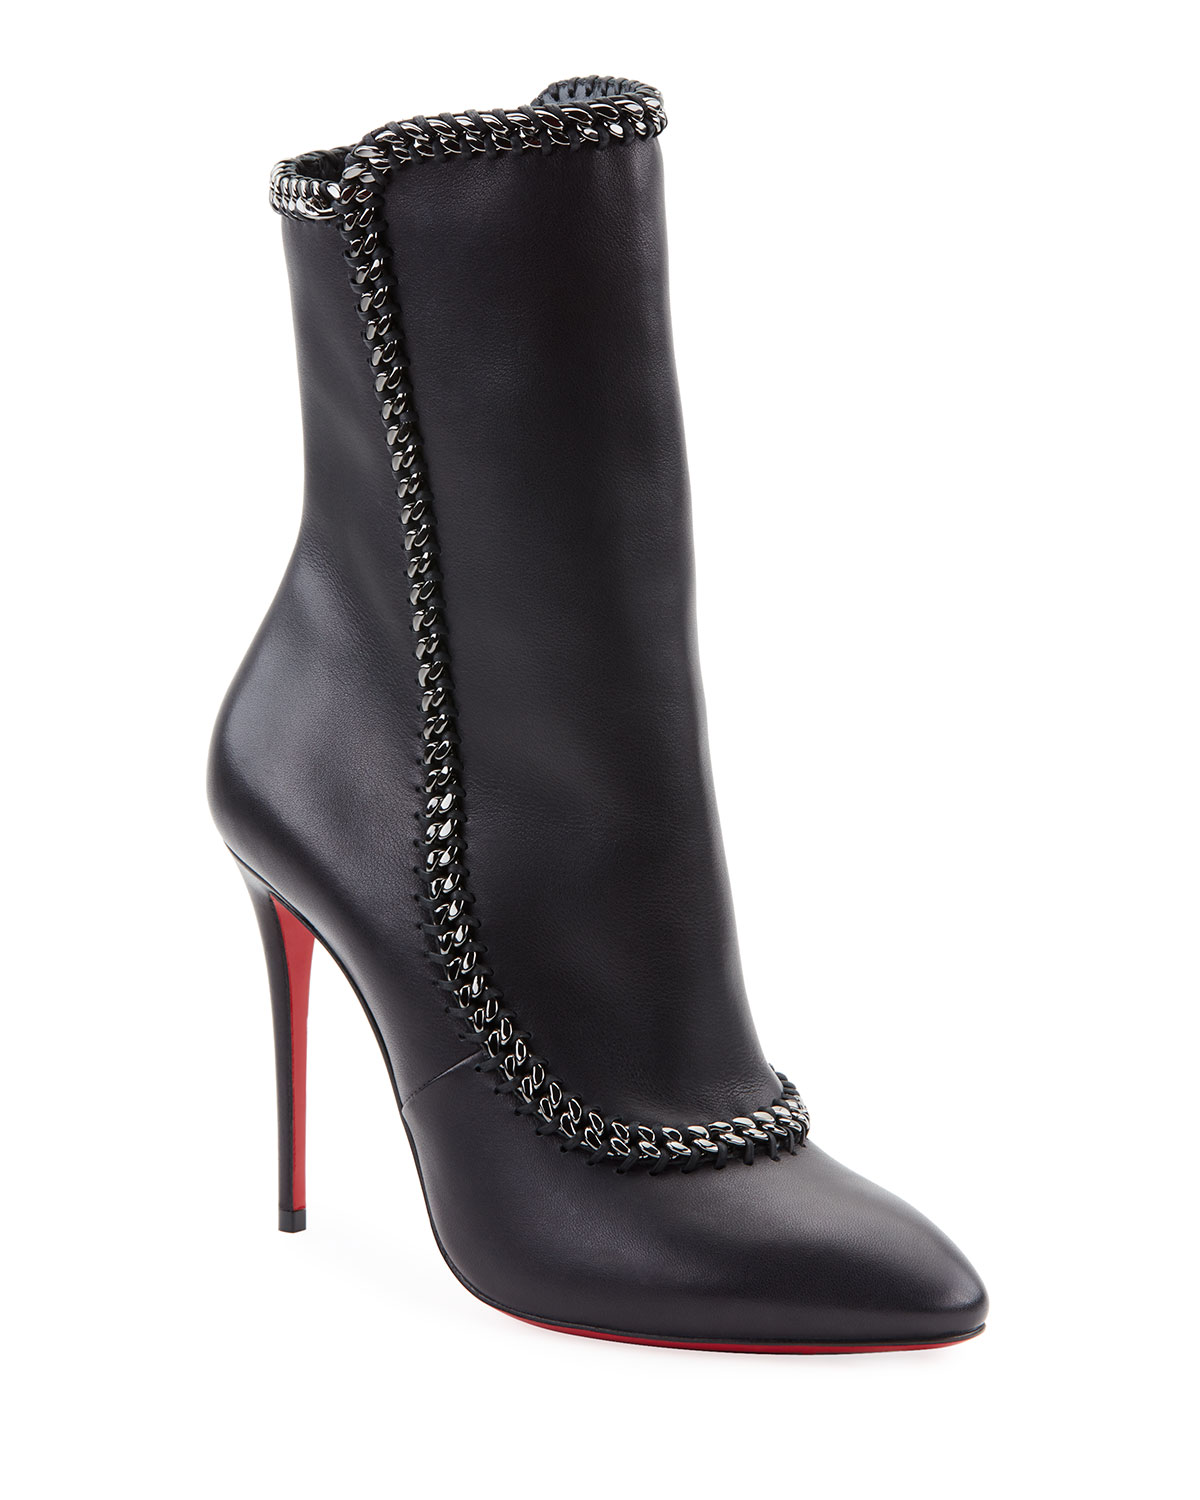 Clemence Red Sole Booties